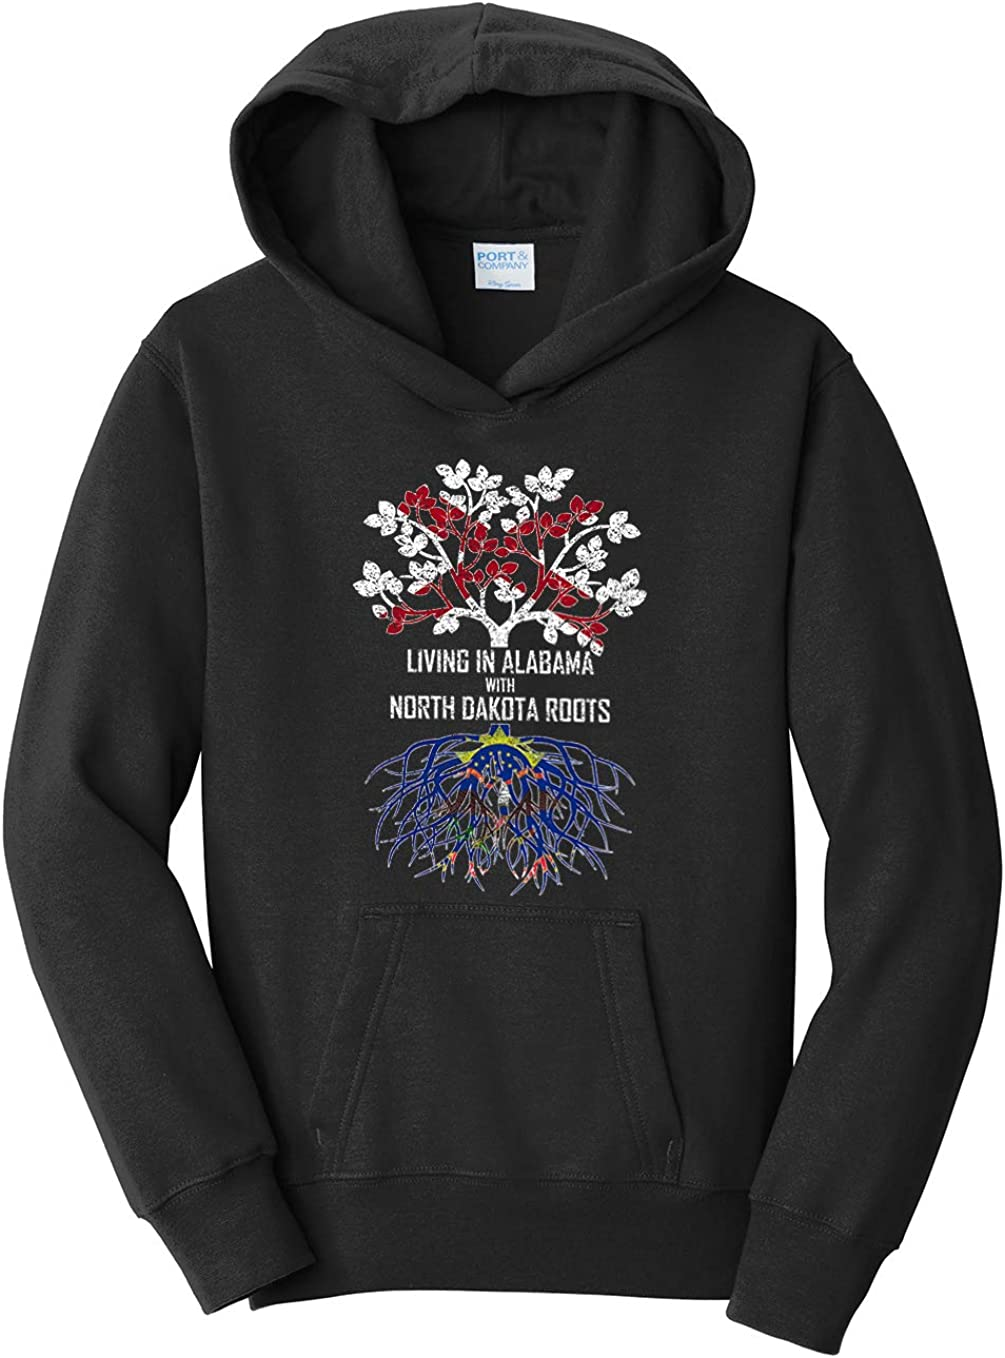 Tenacitee Girls Living in Alabama with North Dakota Roots Hooded Sweatshirt